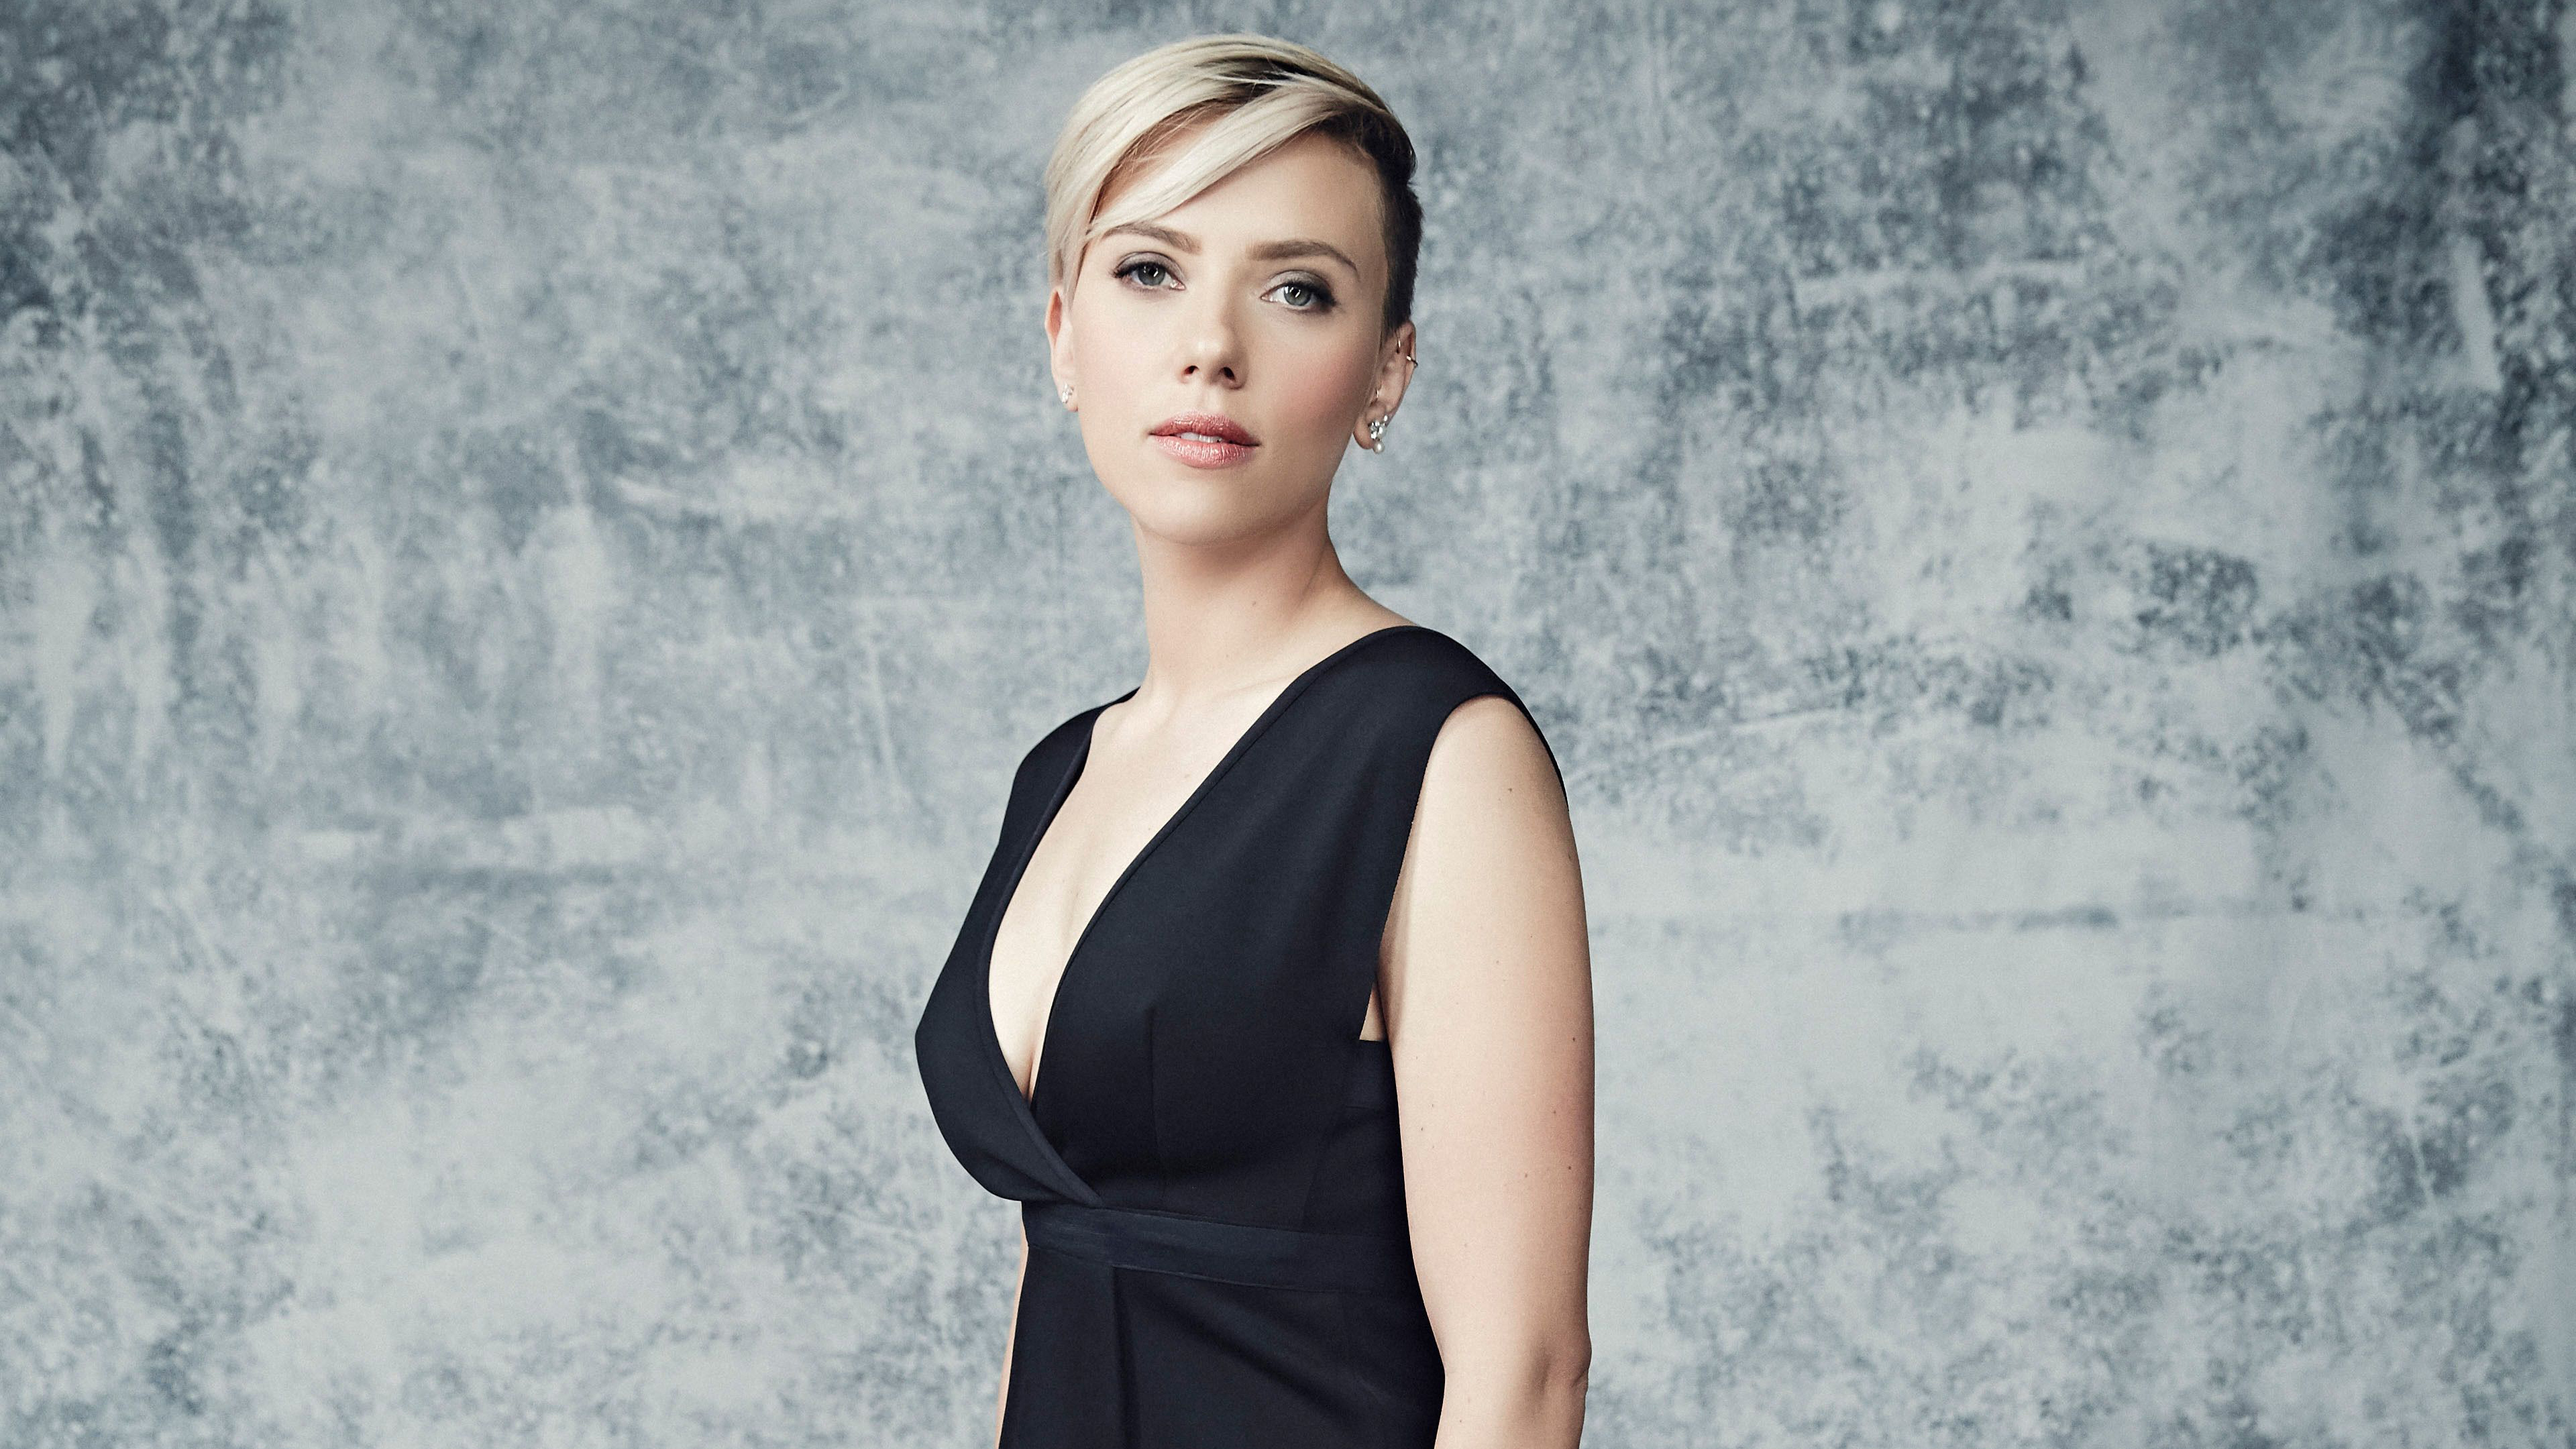 scarlett johansson 2019 4k 1547937658 - Scarlett Johansson 2019 4k - scarlett johansson wallpapers, hd-wallpapers, girls wallpapers, celebrities wallpapers, 4k-wallpapers